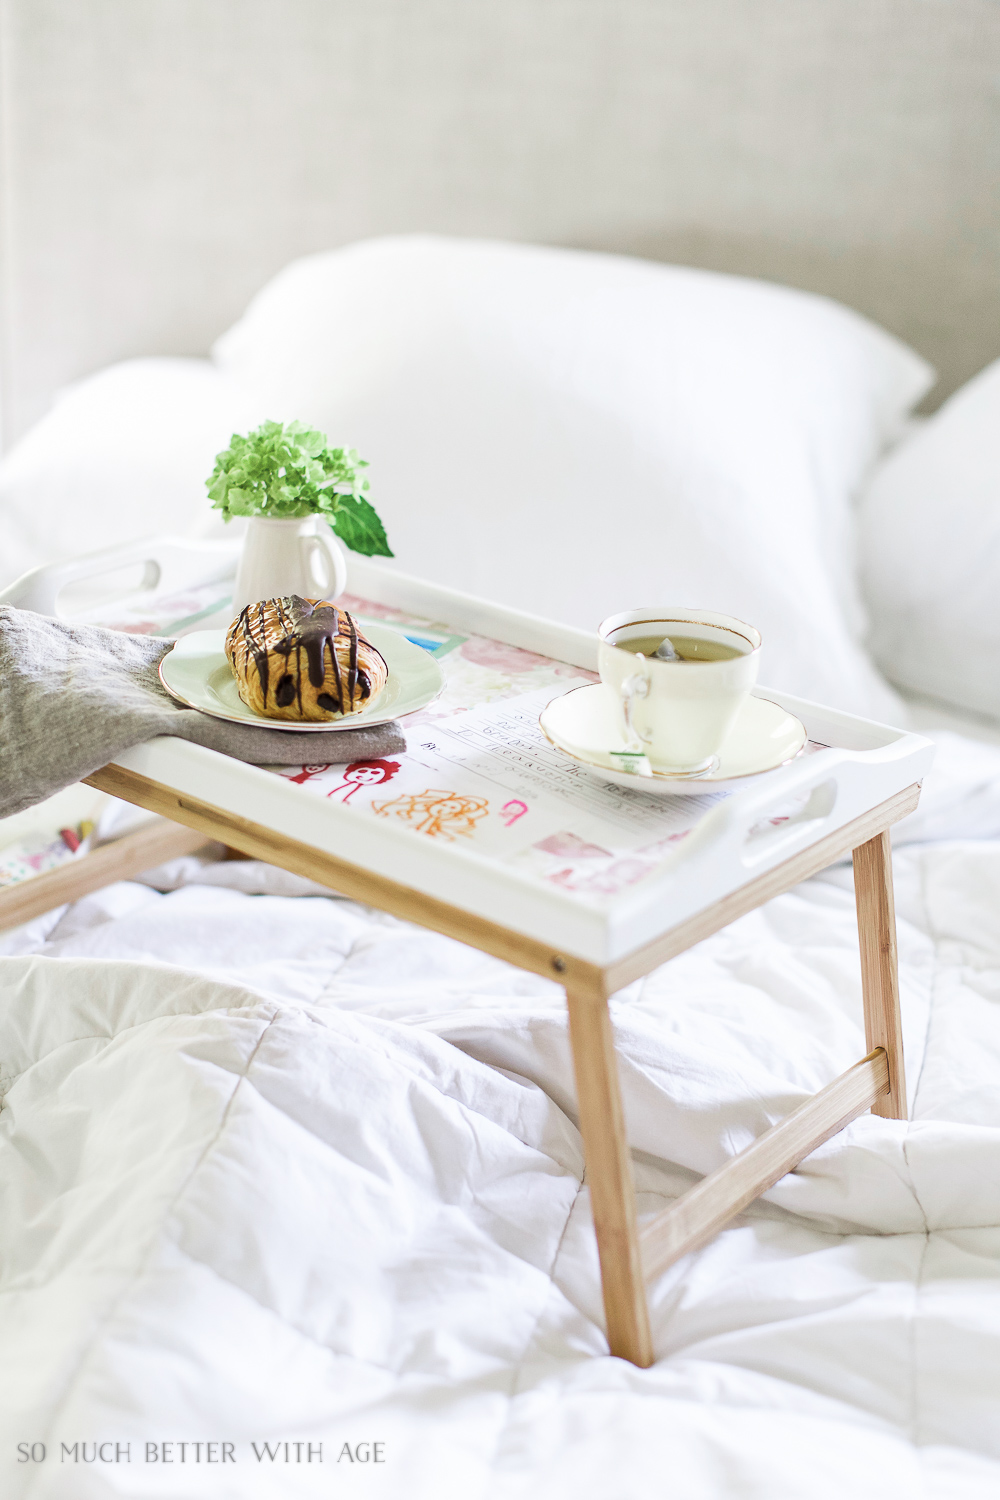 Mother's Day breakfast-in-bed tray with decoupaged kids' art - So Much Better With Age